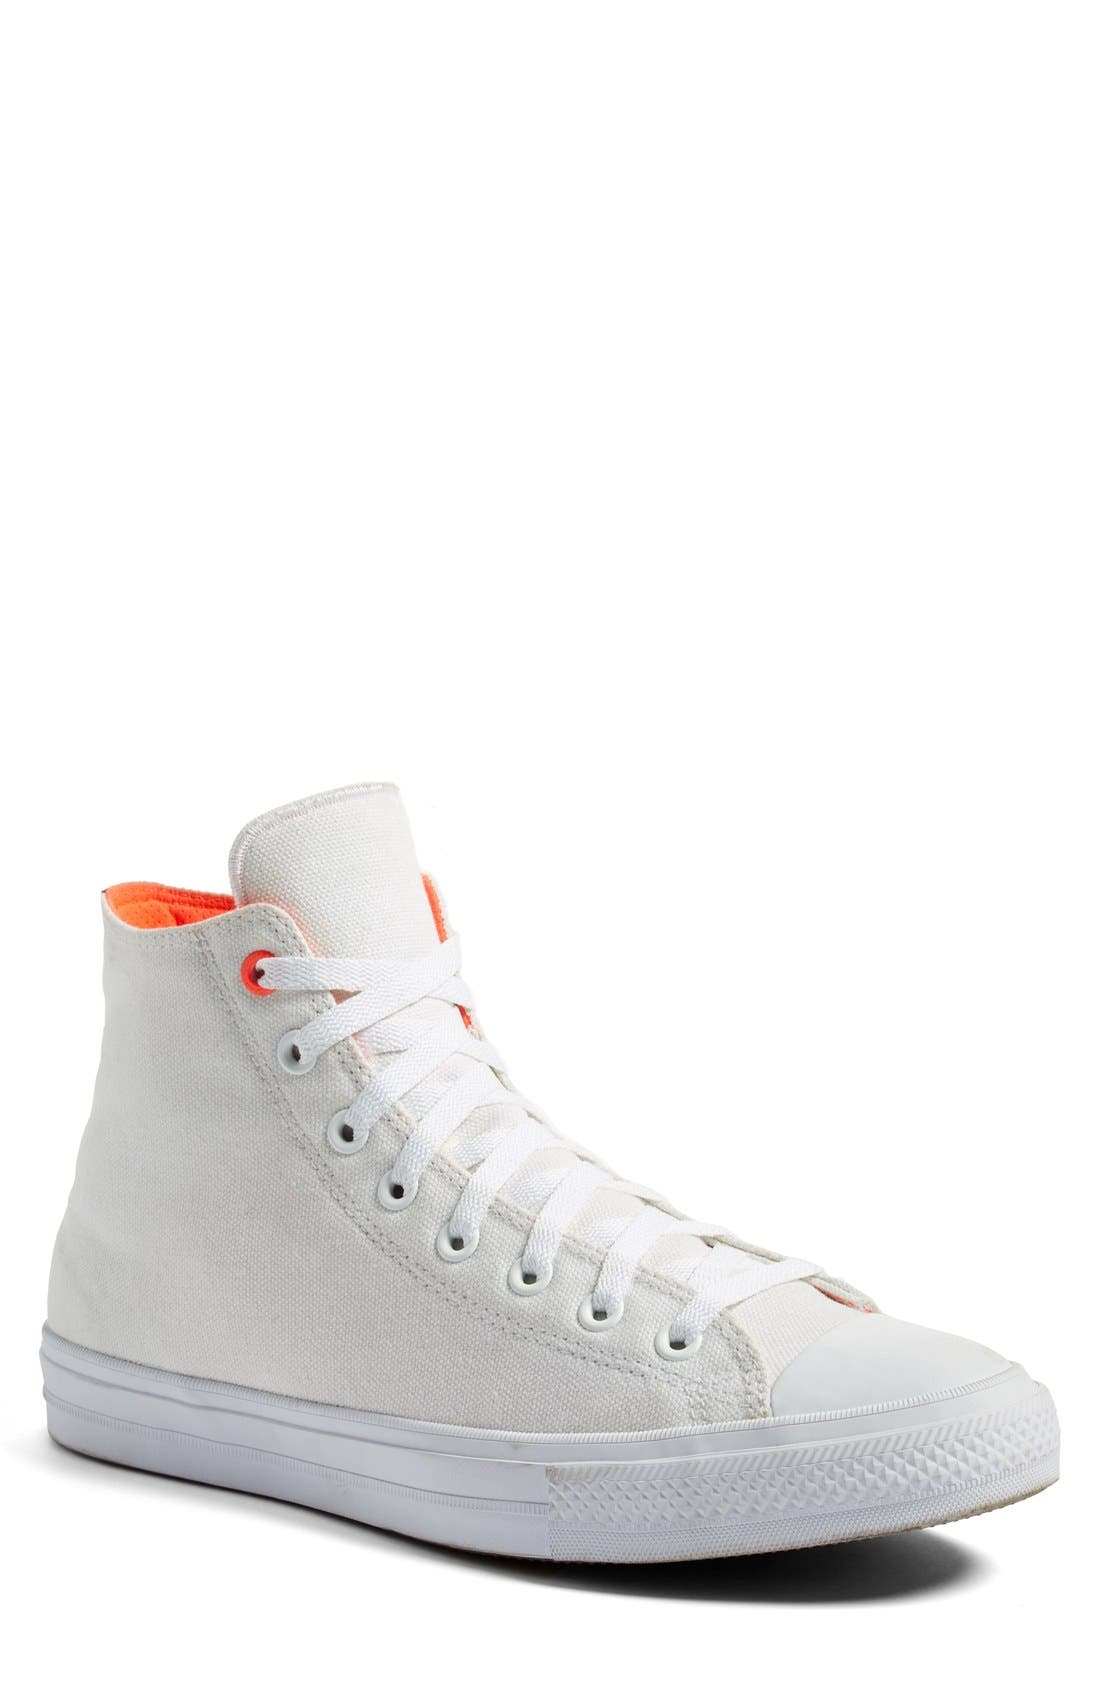 Chuck Taylor<sup>®</sup> All Star<sup>®</sup> II 'Shield' Water Repellent High Top Sneaker,                         Main,                         color, 102